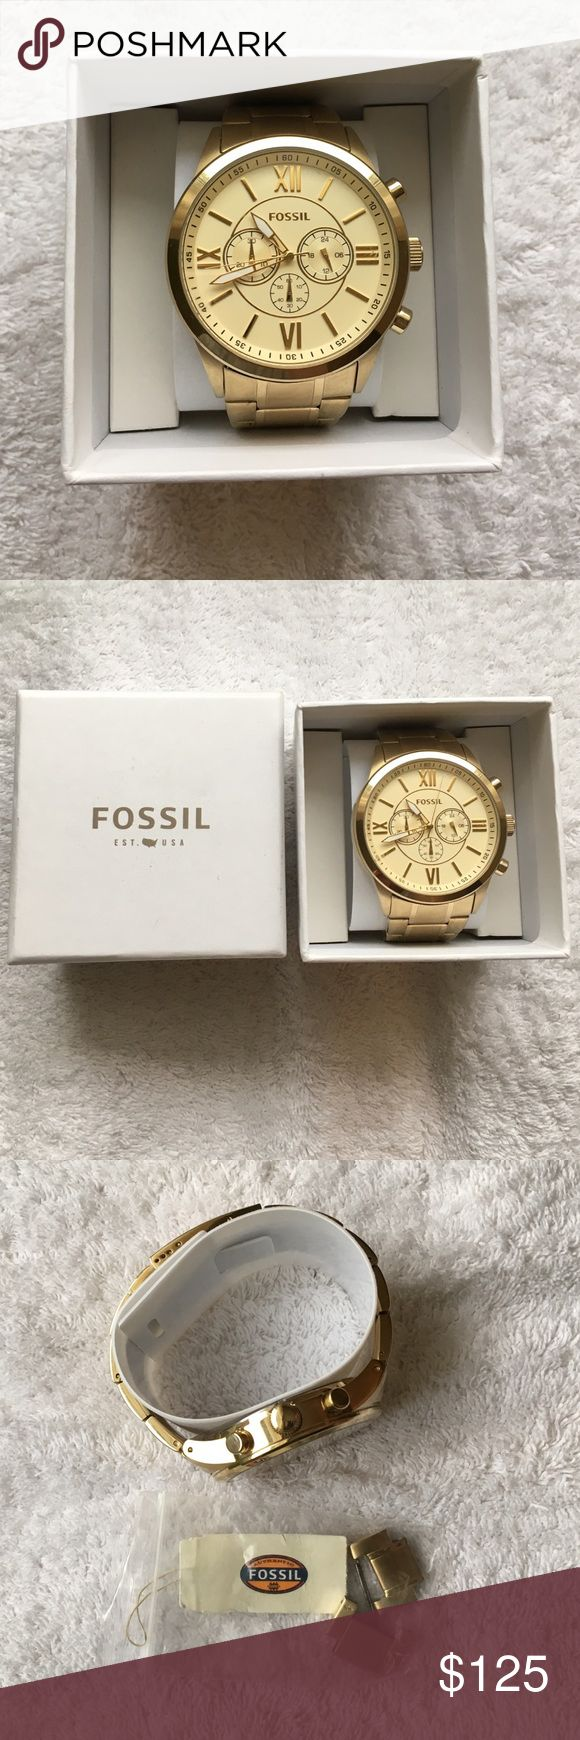 NWT Men's Fossil watch Brand New Fossil BQ1128 Gold Tone Stainless Steel Chronograph Men's Watch Fossil Accessories Watches